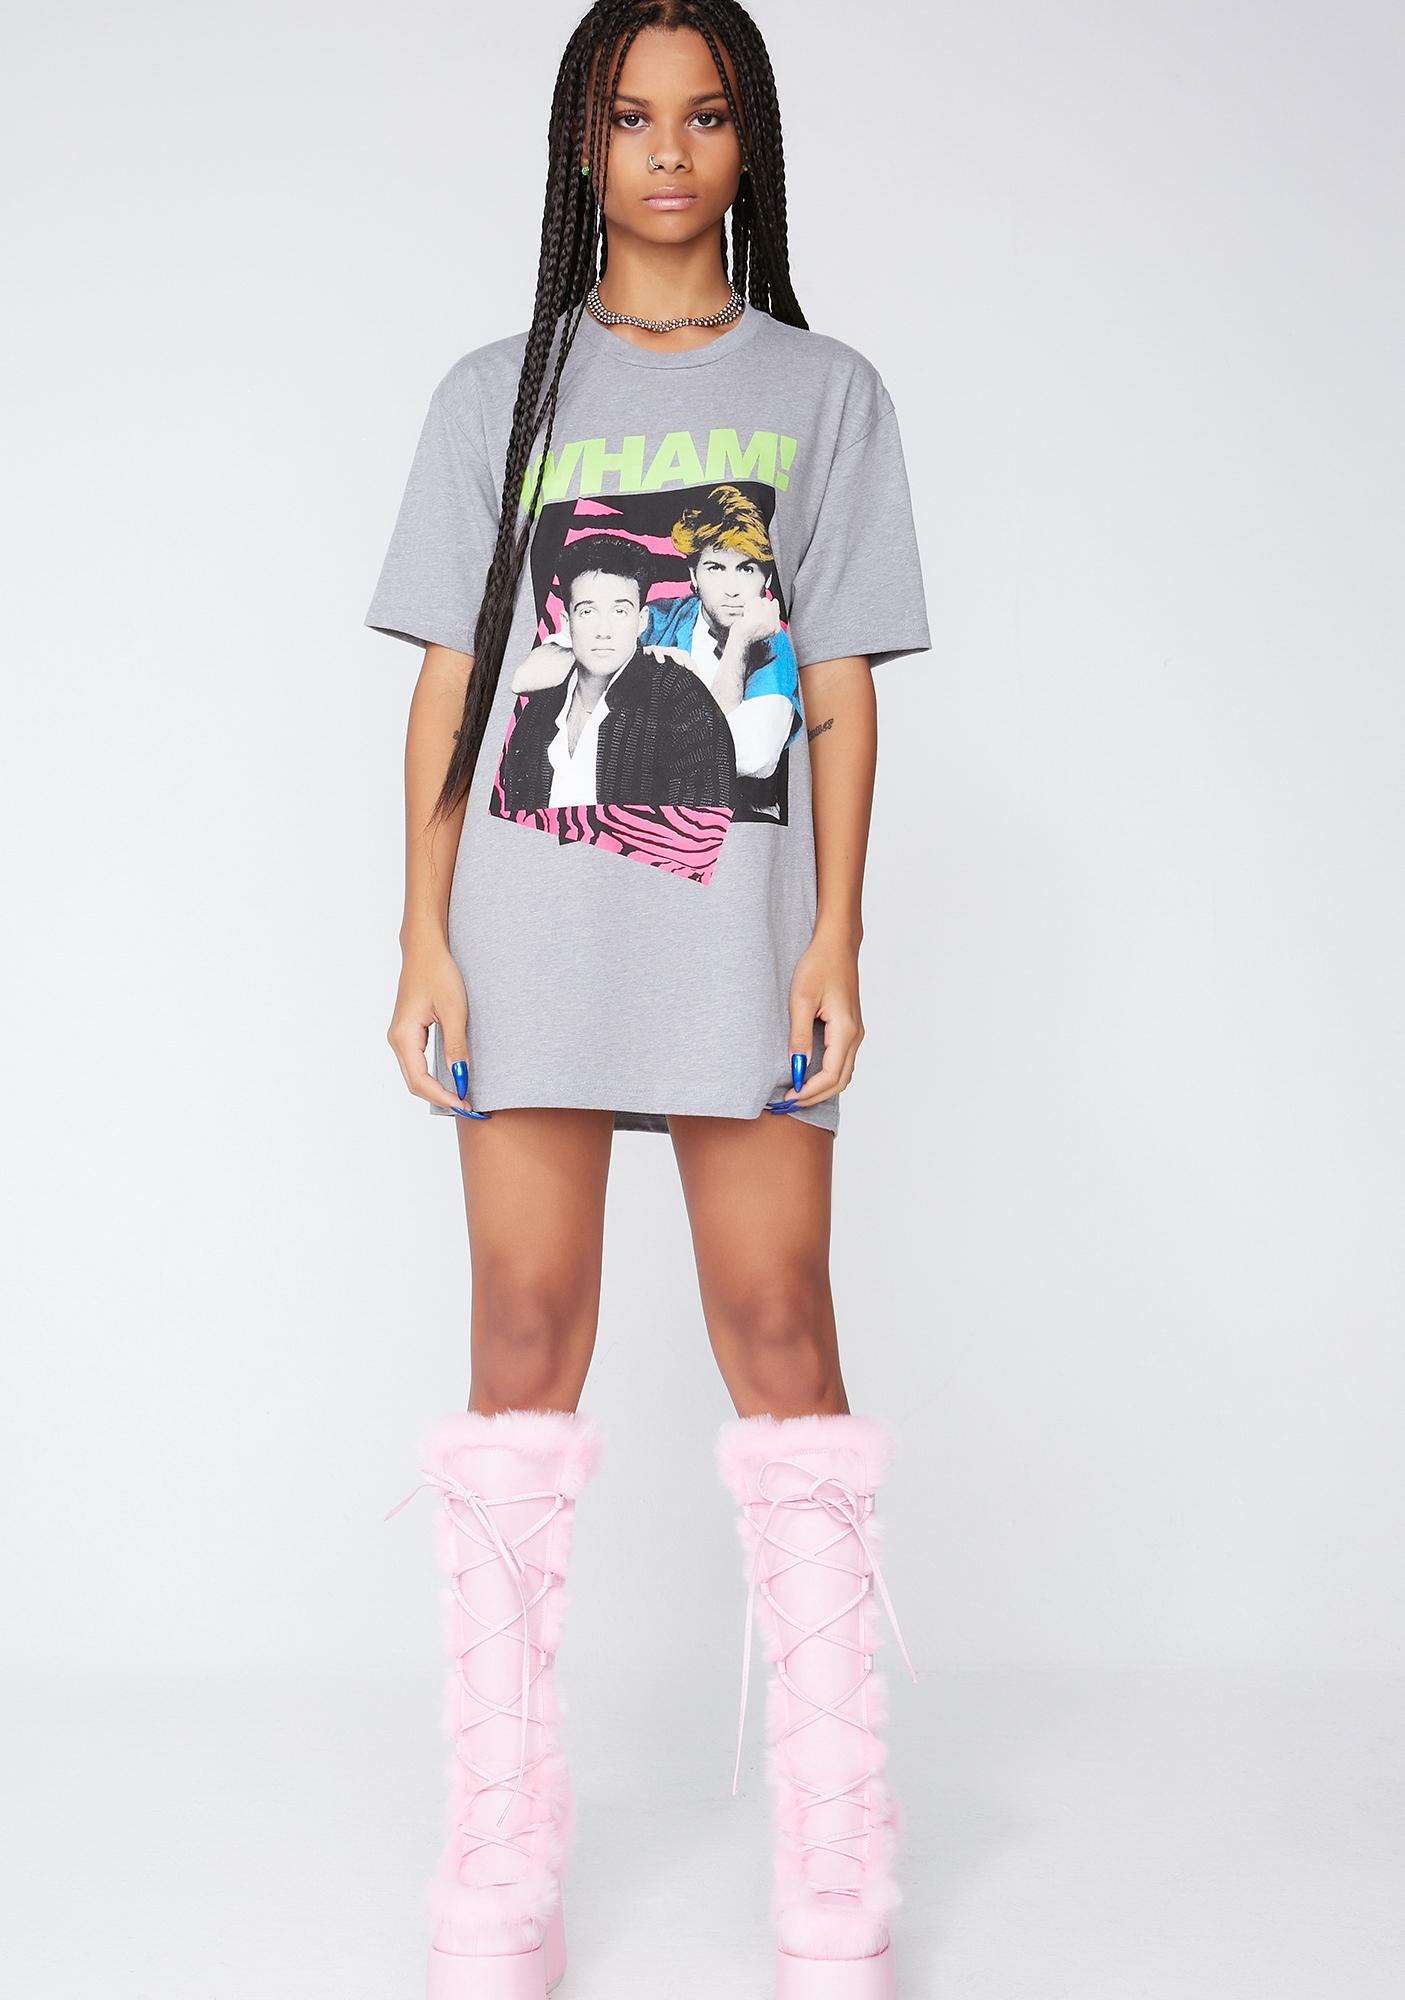 Careless Whispers Graphic Tee